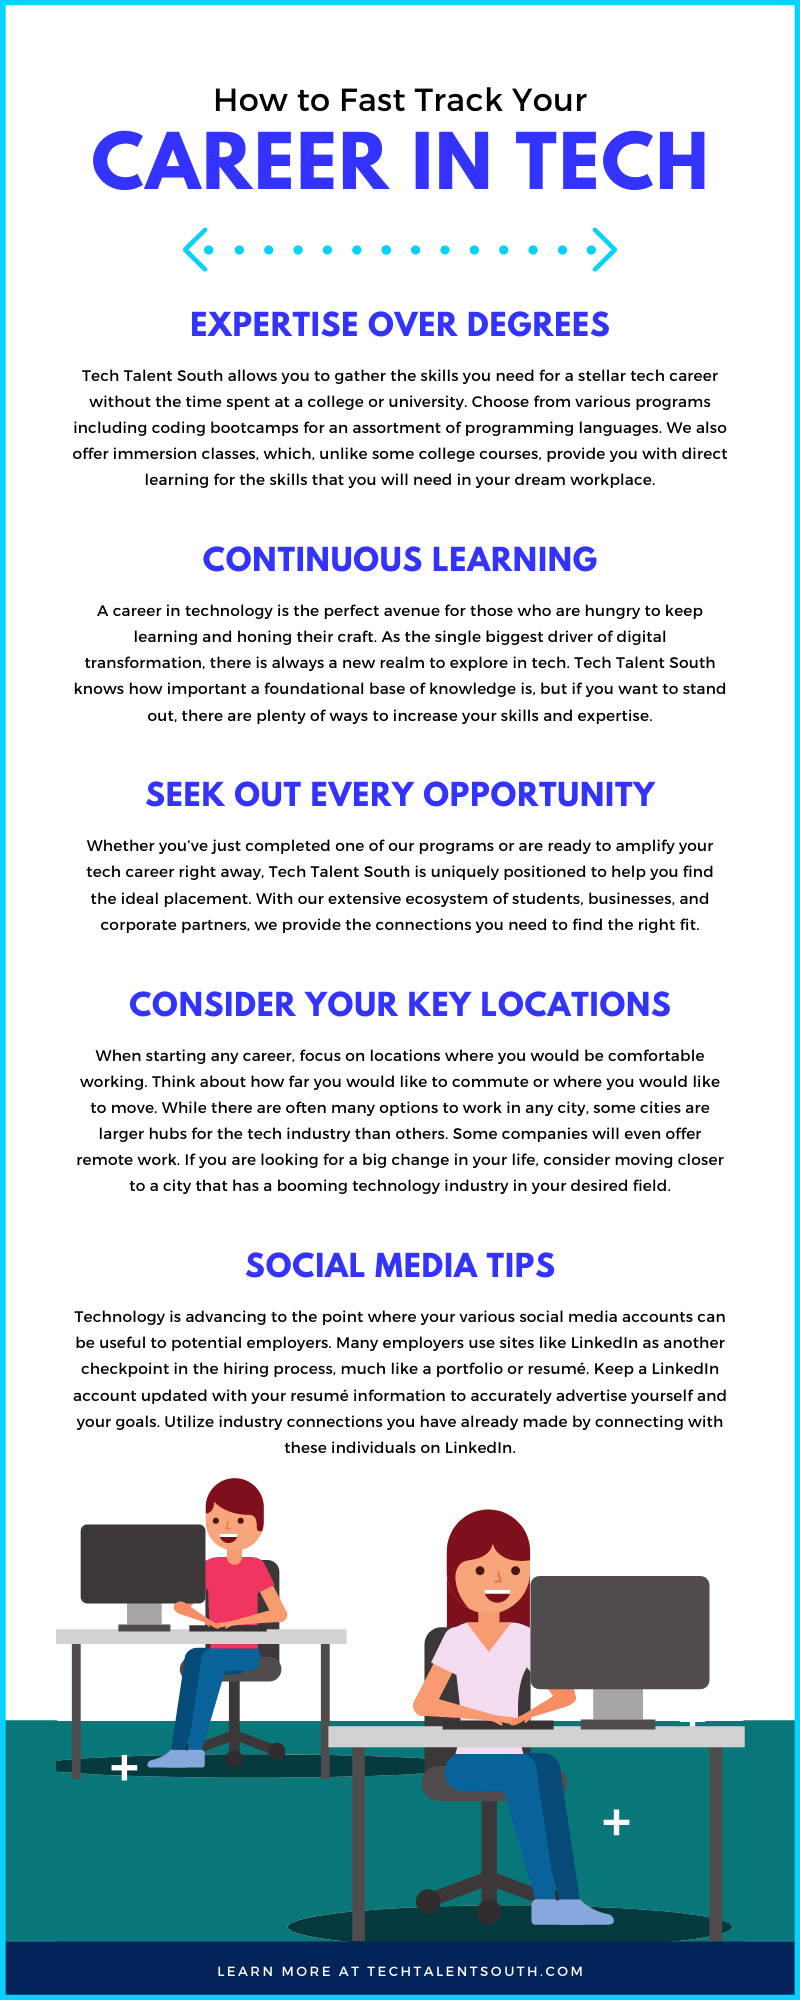 techtalentsouth-seotool-53173-howtofast-infographic2